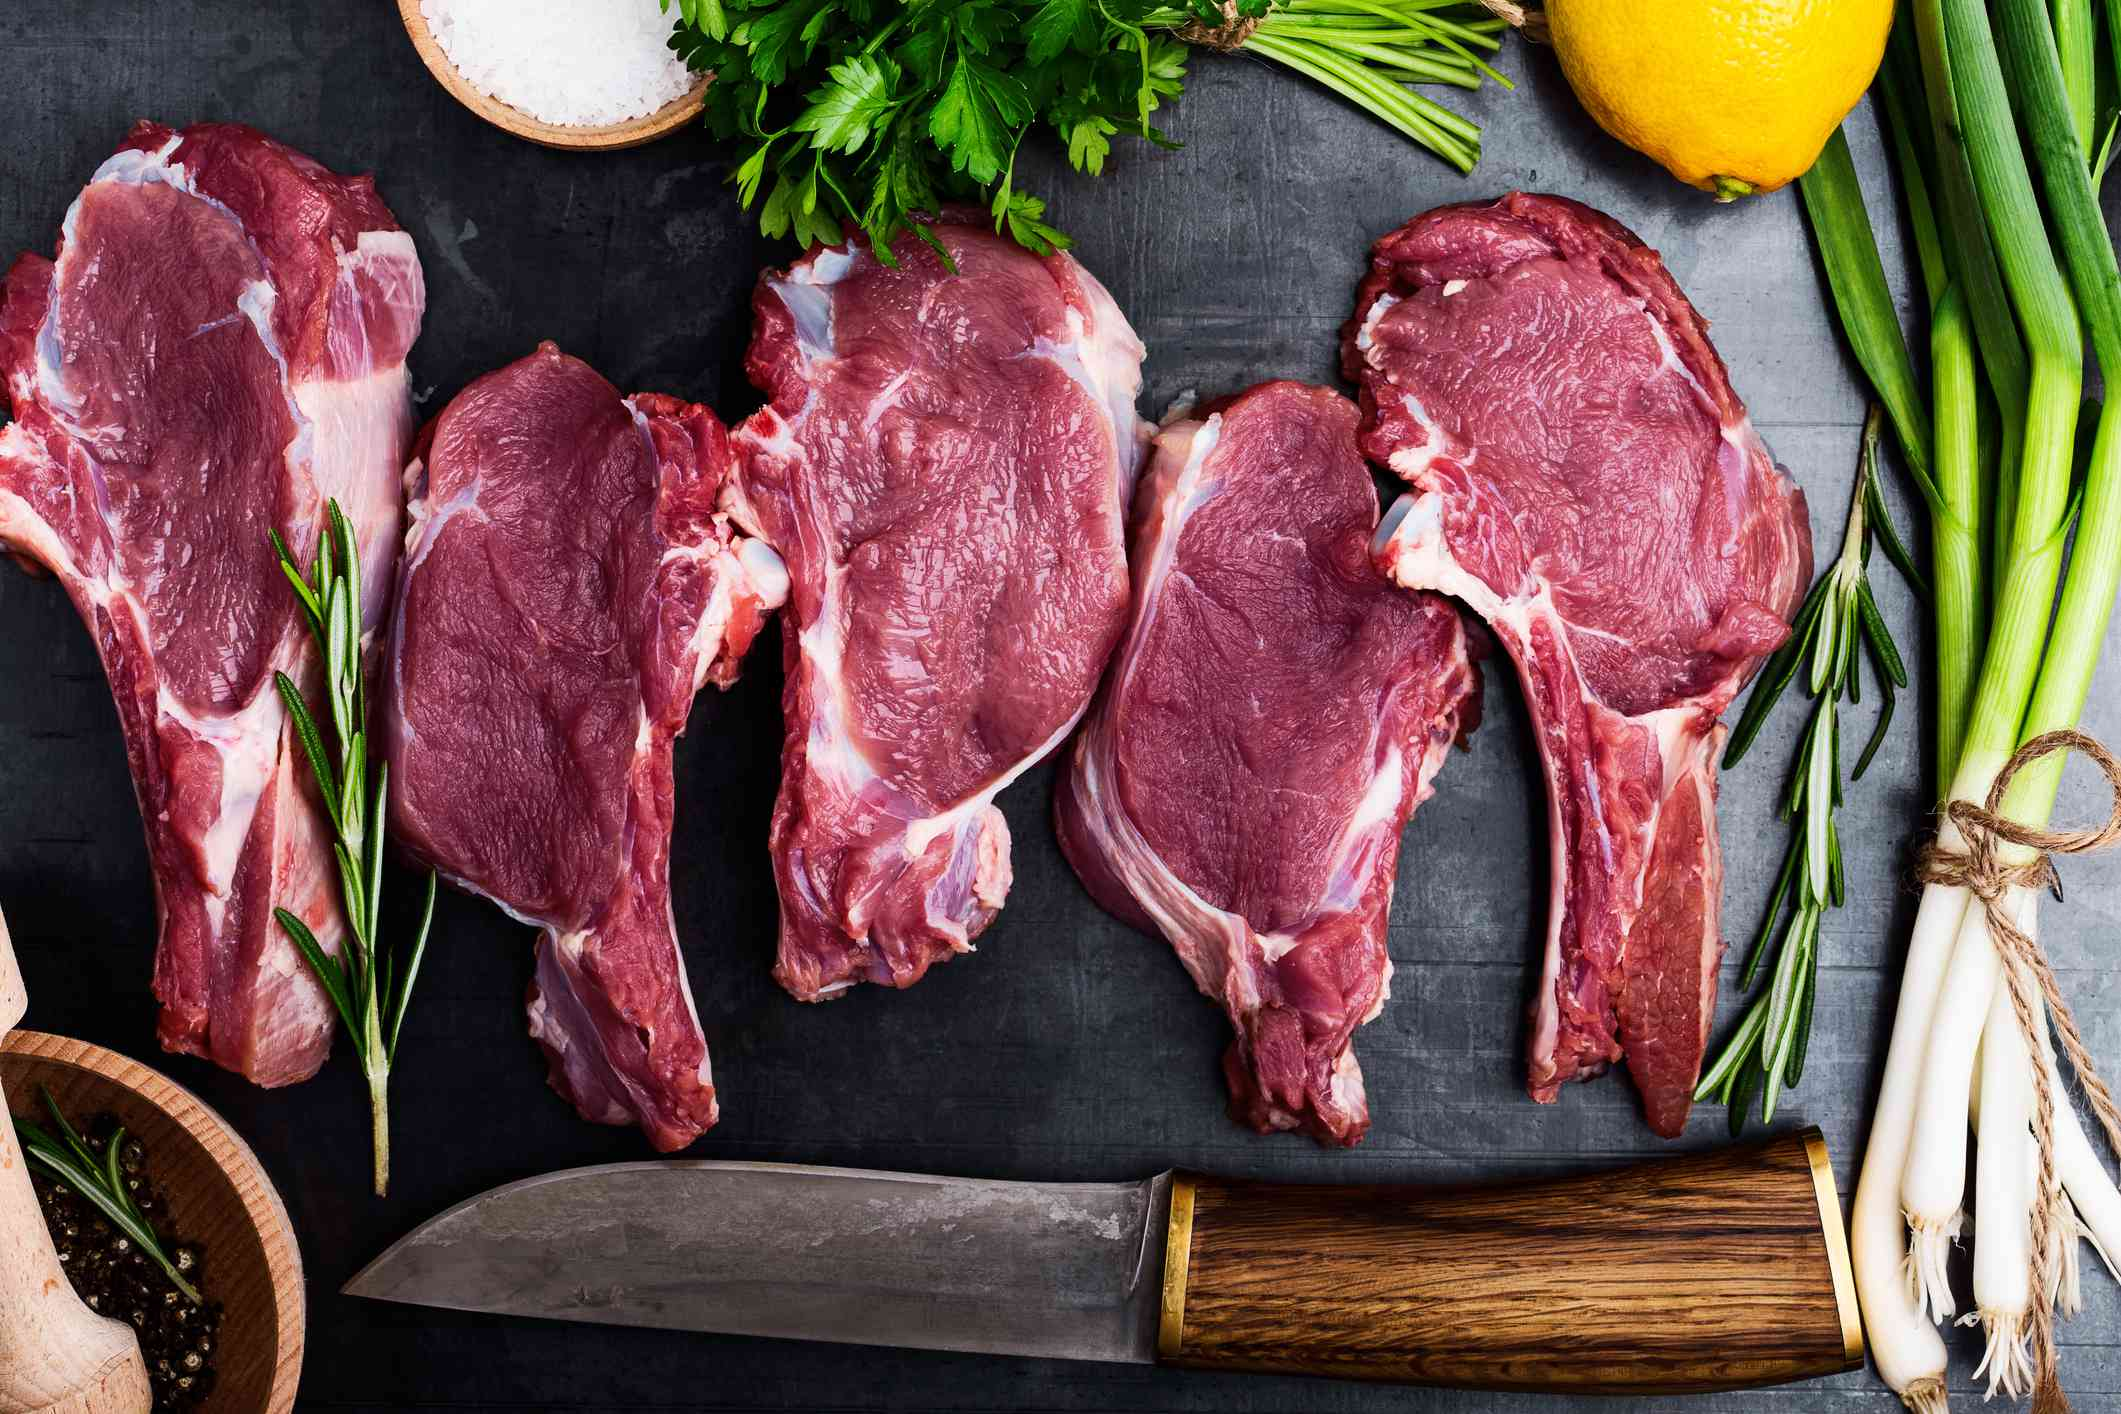 raw cuts of steak surrounded by herbs and a knife